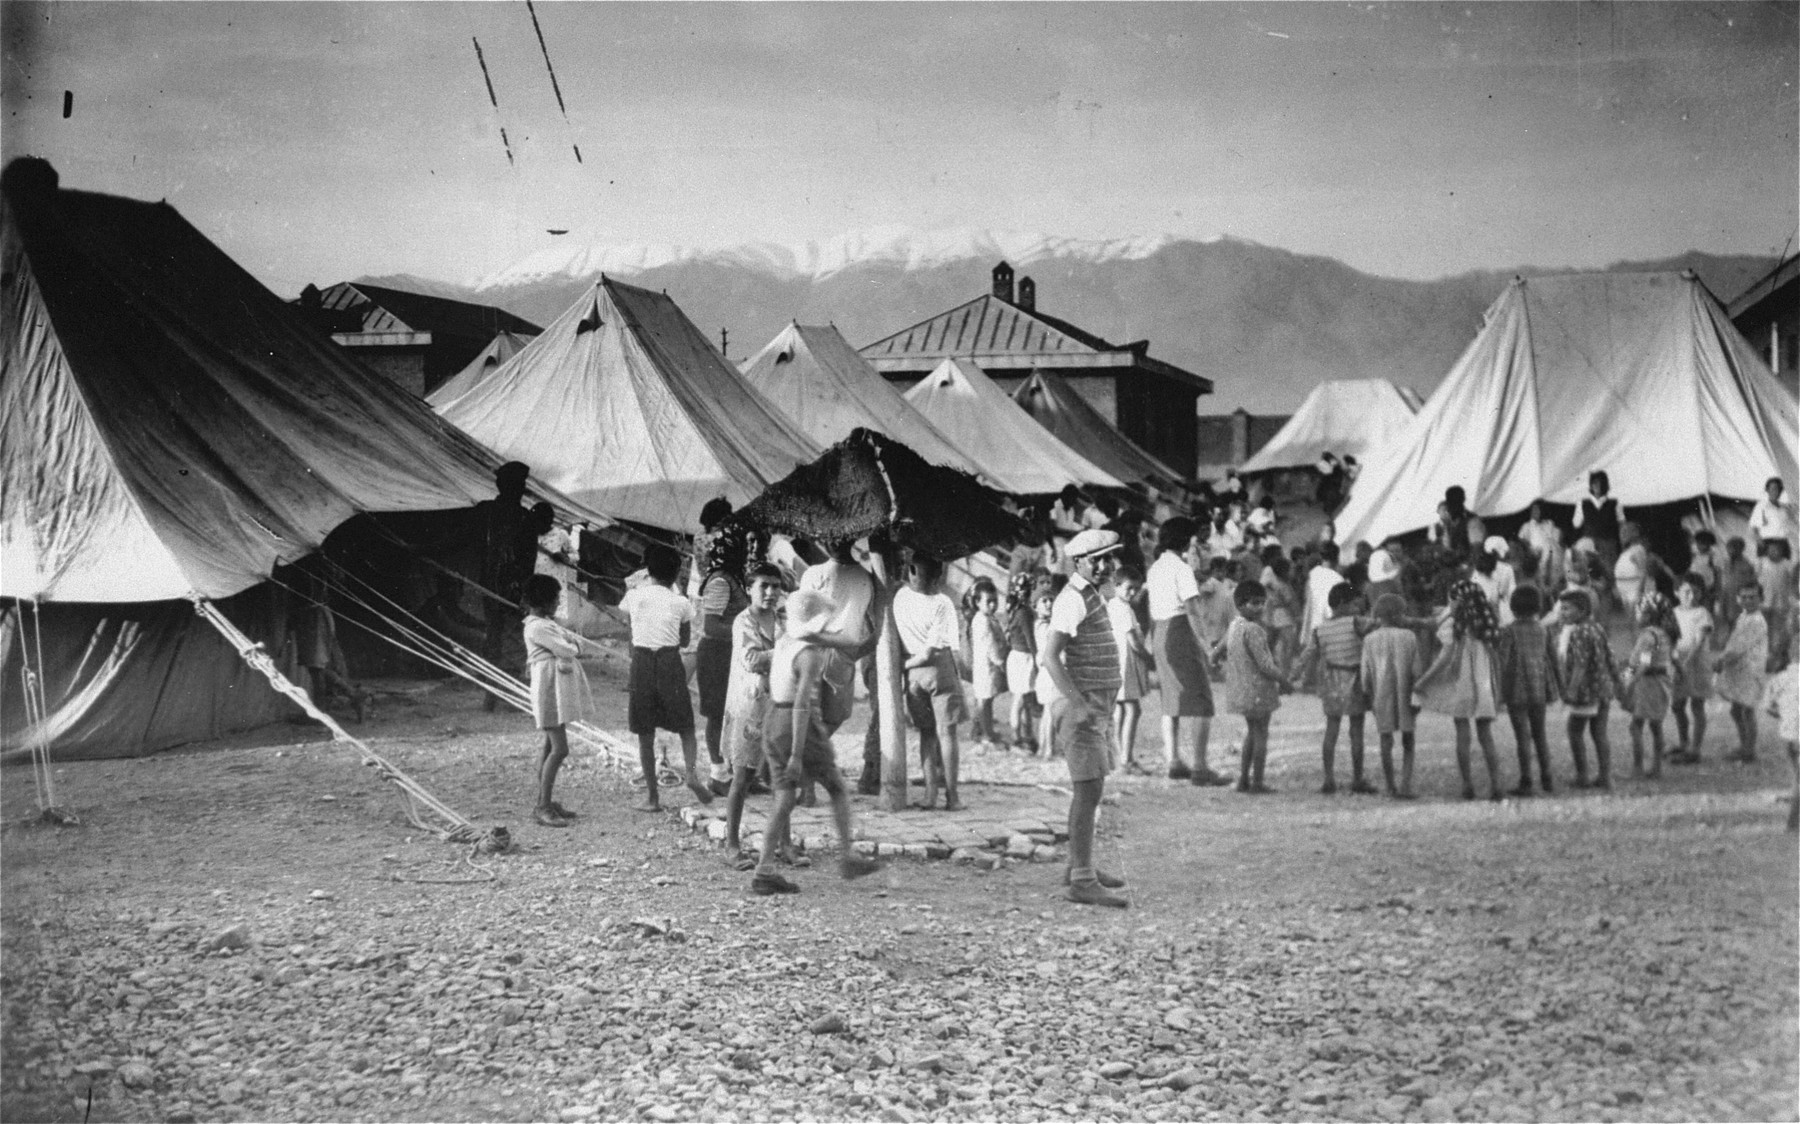 Members of the Teheran children's transport are gathered in front of tents at a refugee camp in Teheran.